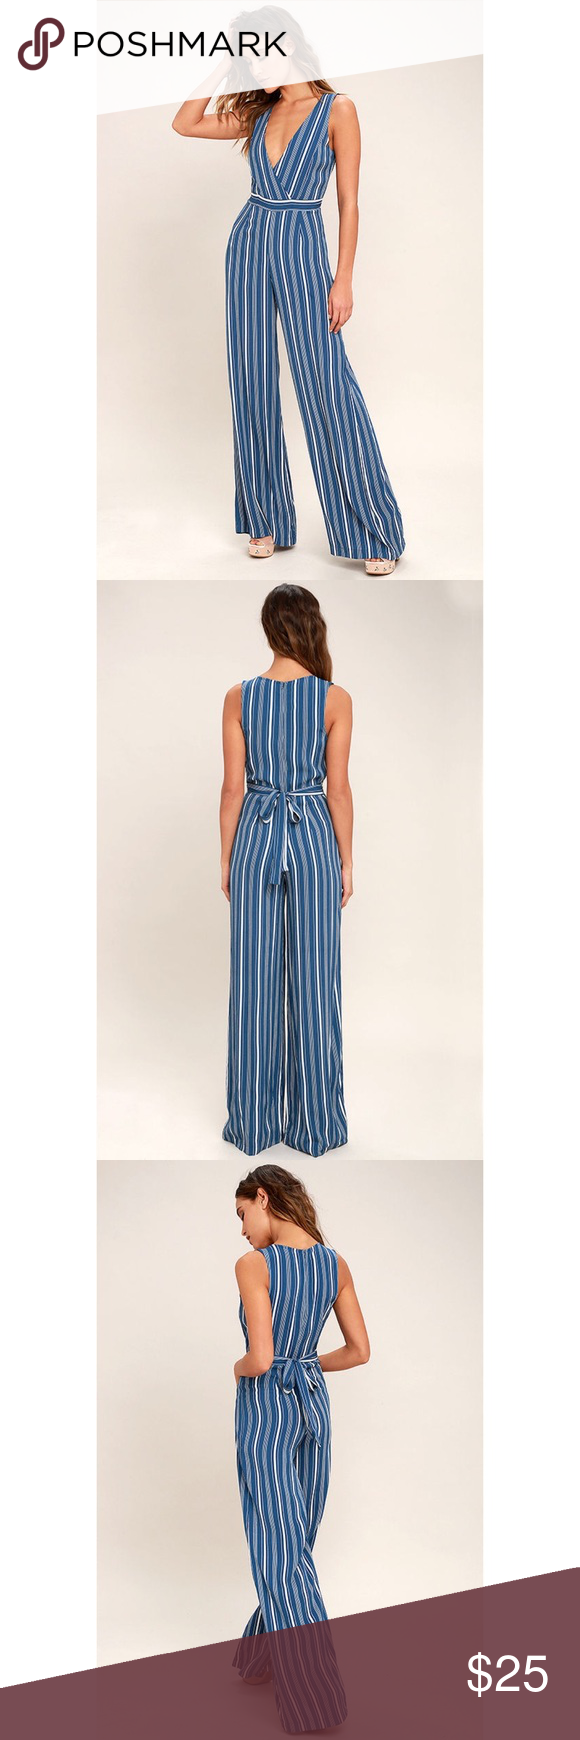 81185141bc4d Lulus Montauk Yacht Club Blue and White Striped Lulus Exclusive! The Lulus  Montauk Yacht Club Blue and White Striped Jumpsuit is our beach resort  go-to!